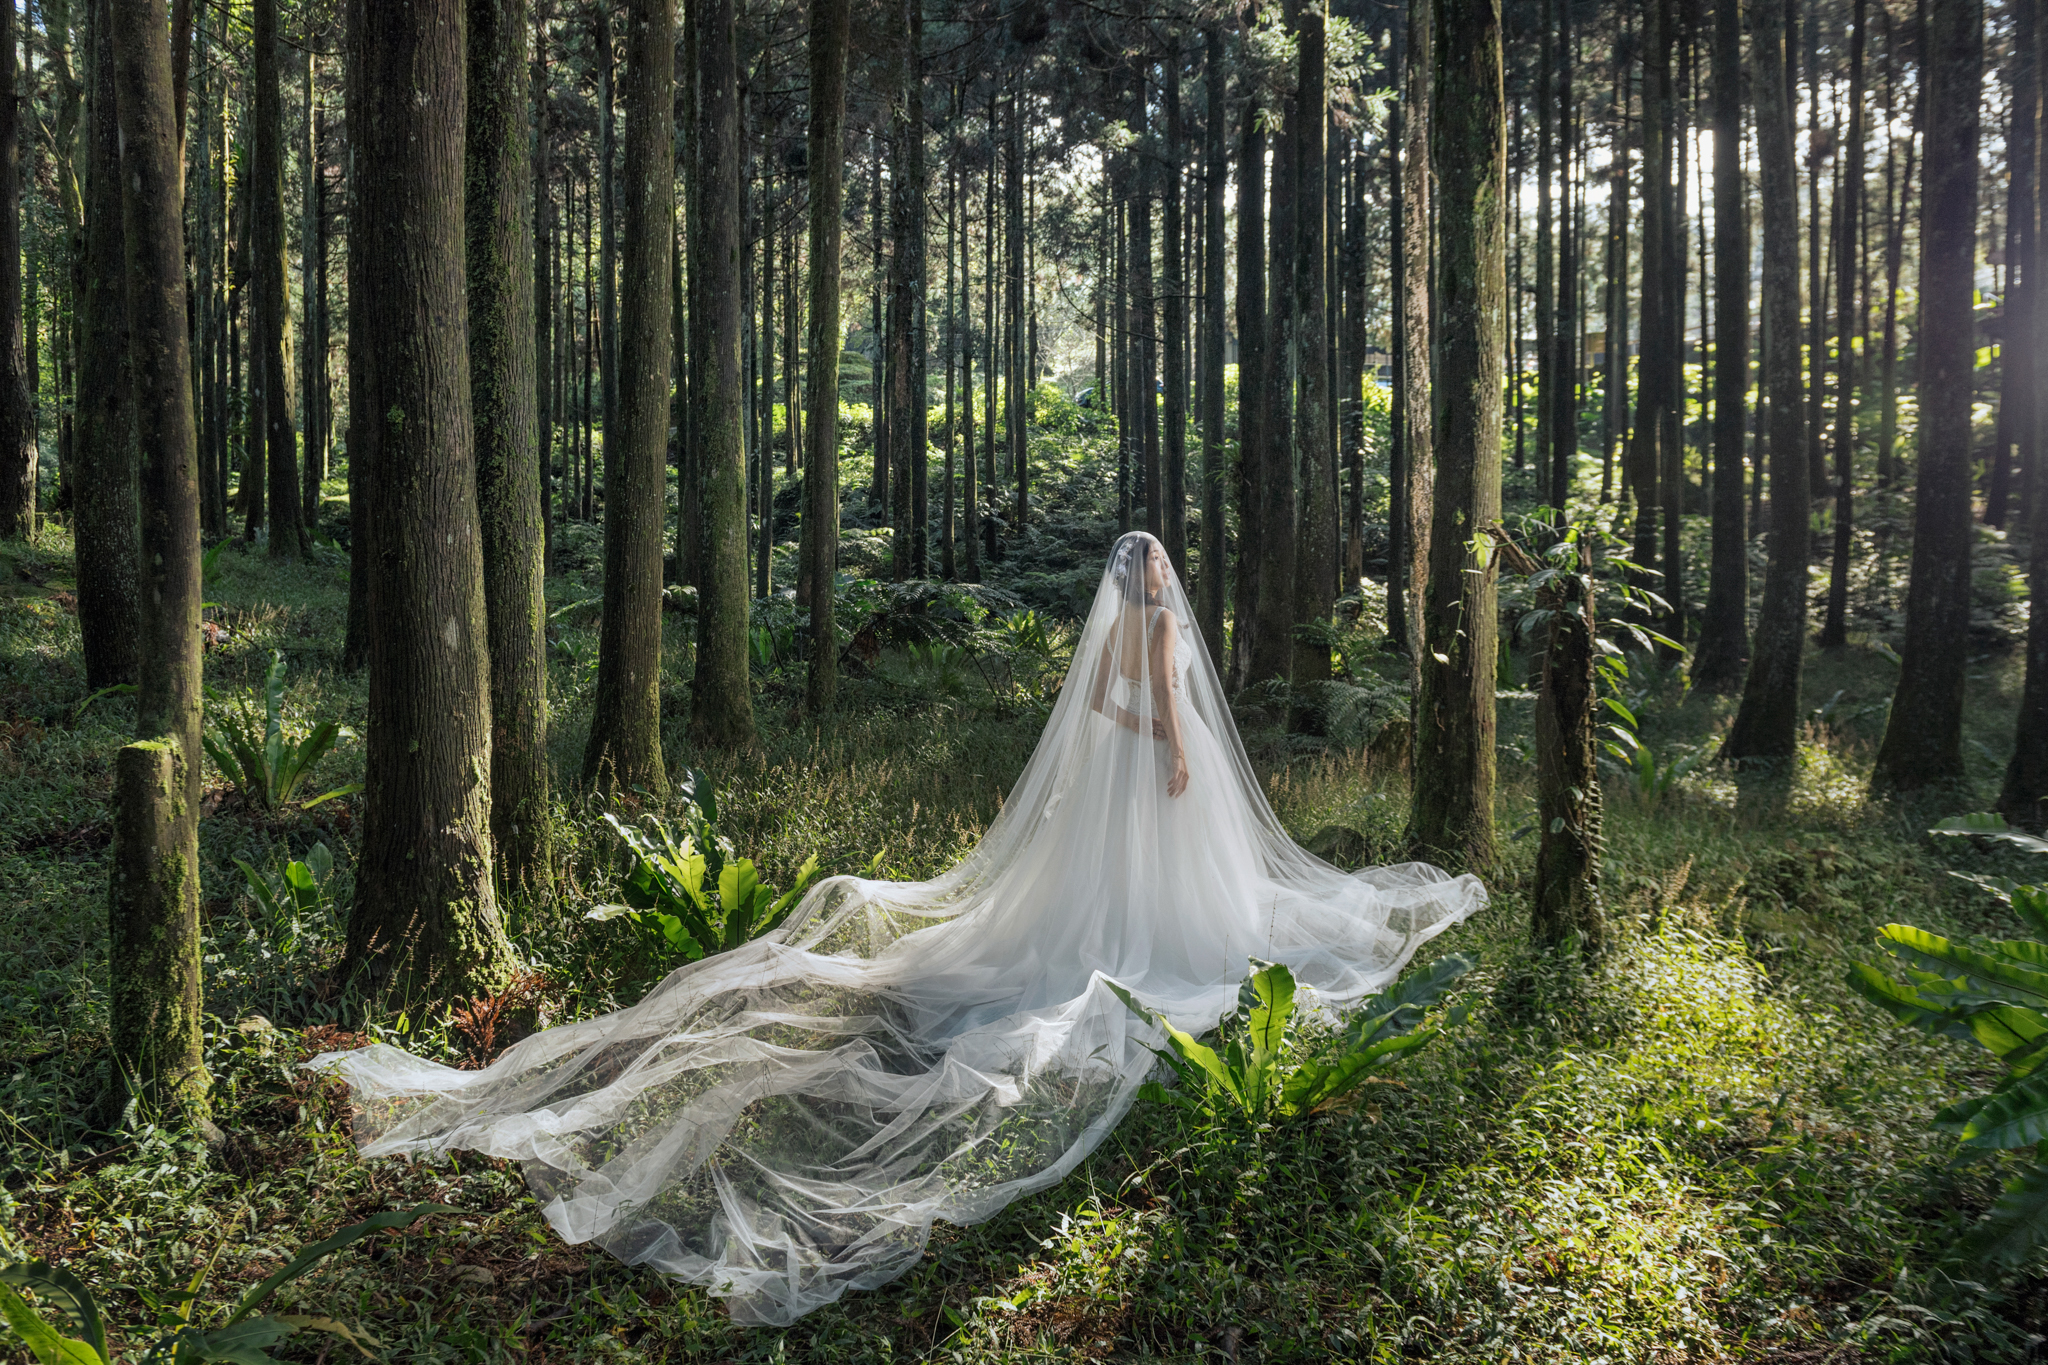 Donfer Photography, EASTERN WEDDING, 自主婚紗, 自助婚紗, 婚紗影像, 熊空茶園, 藝術婚紗, 東法